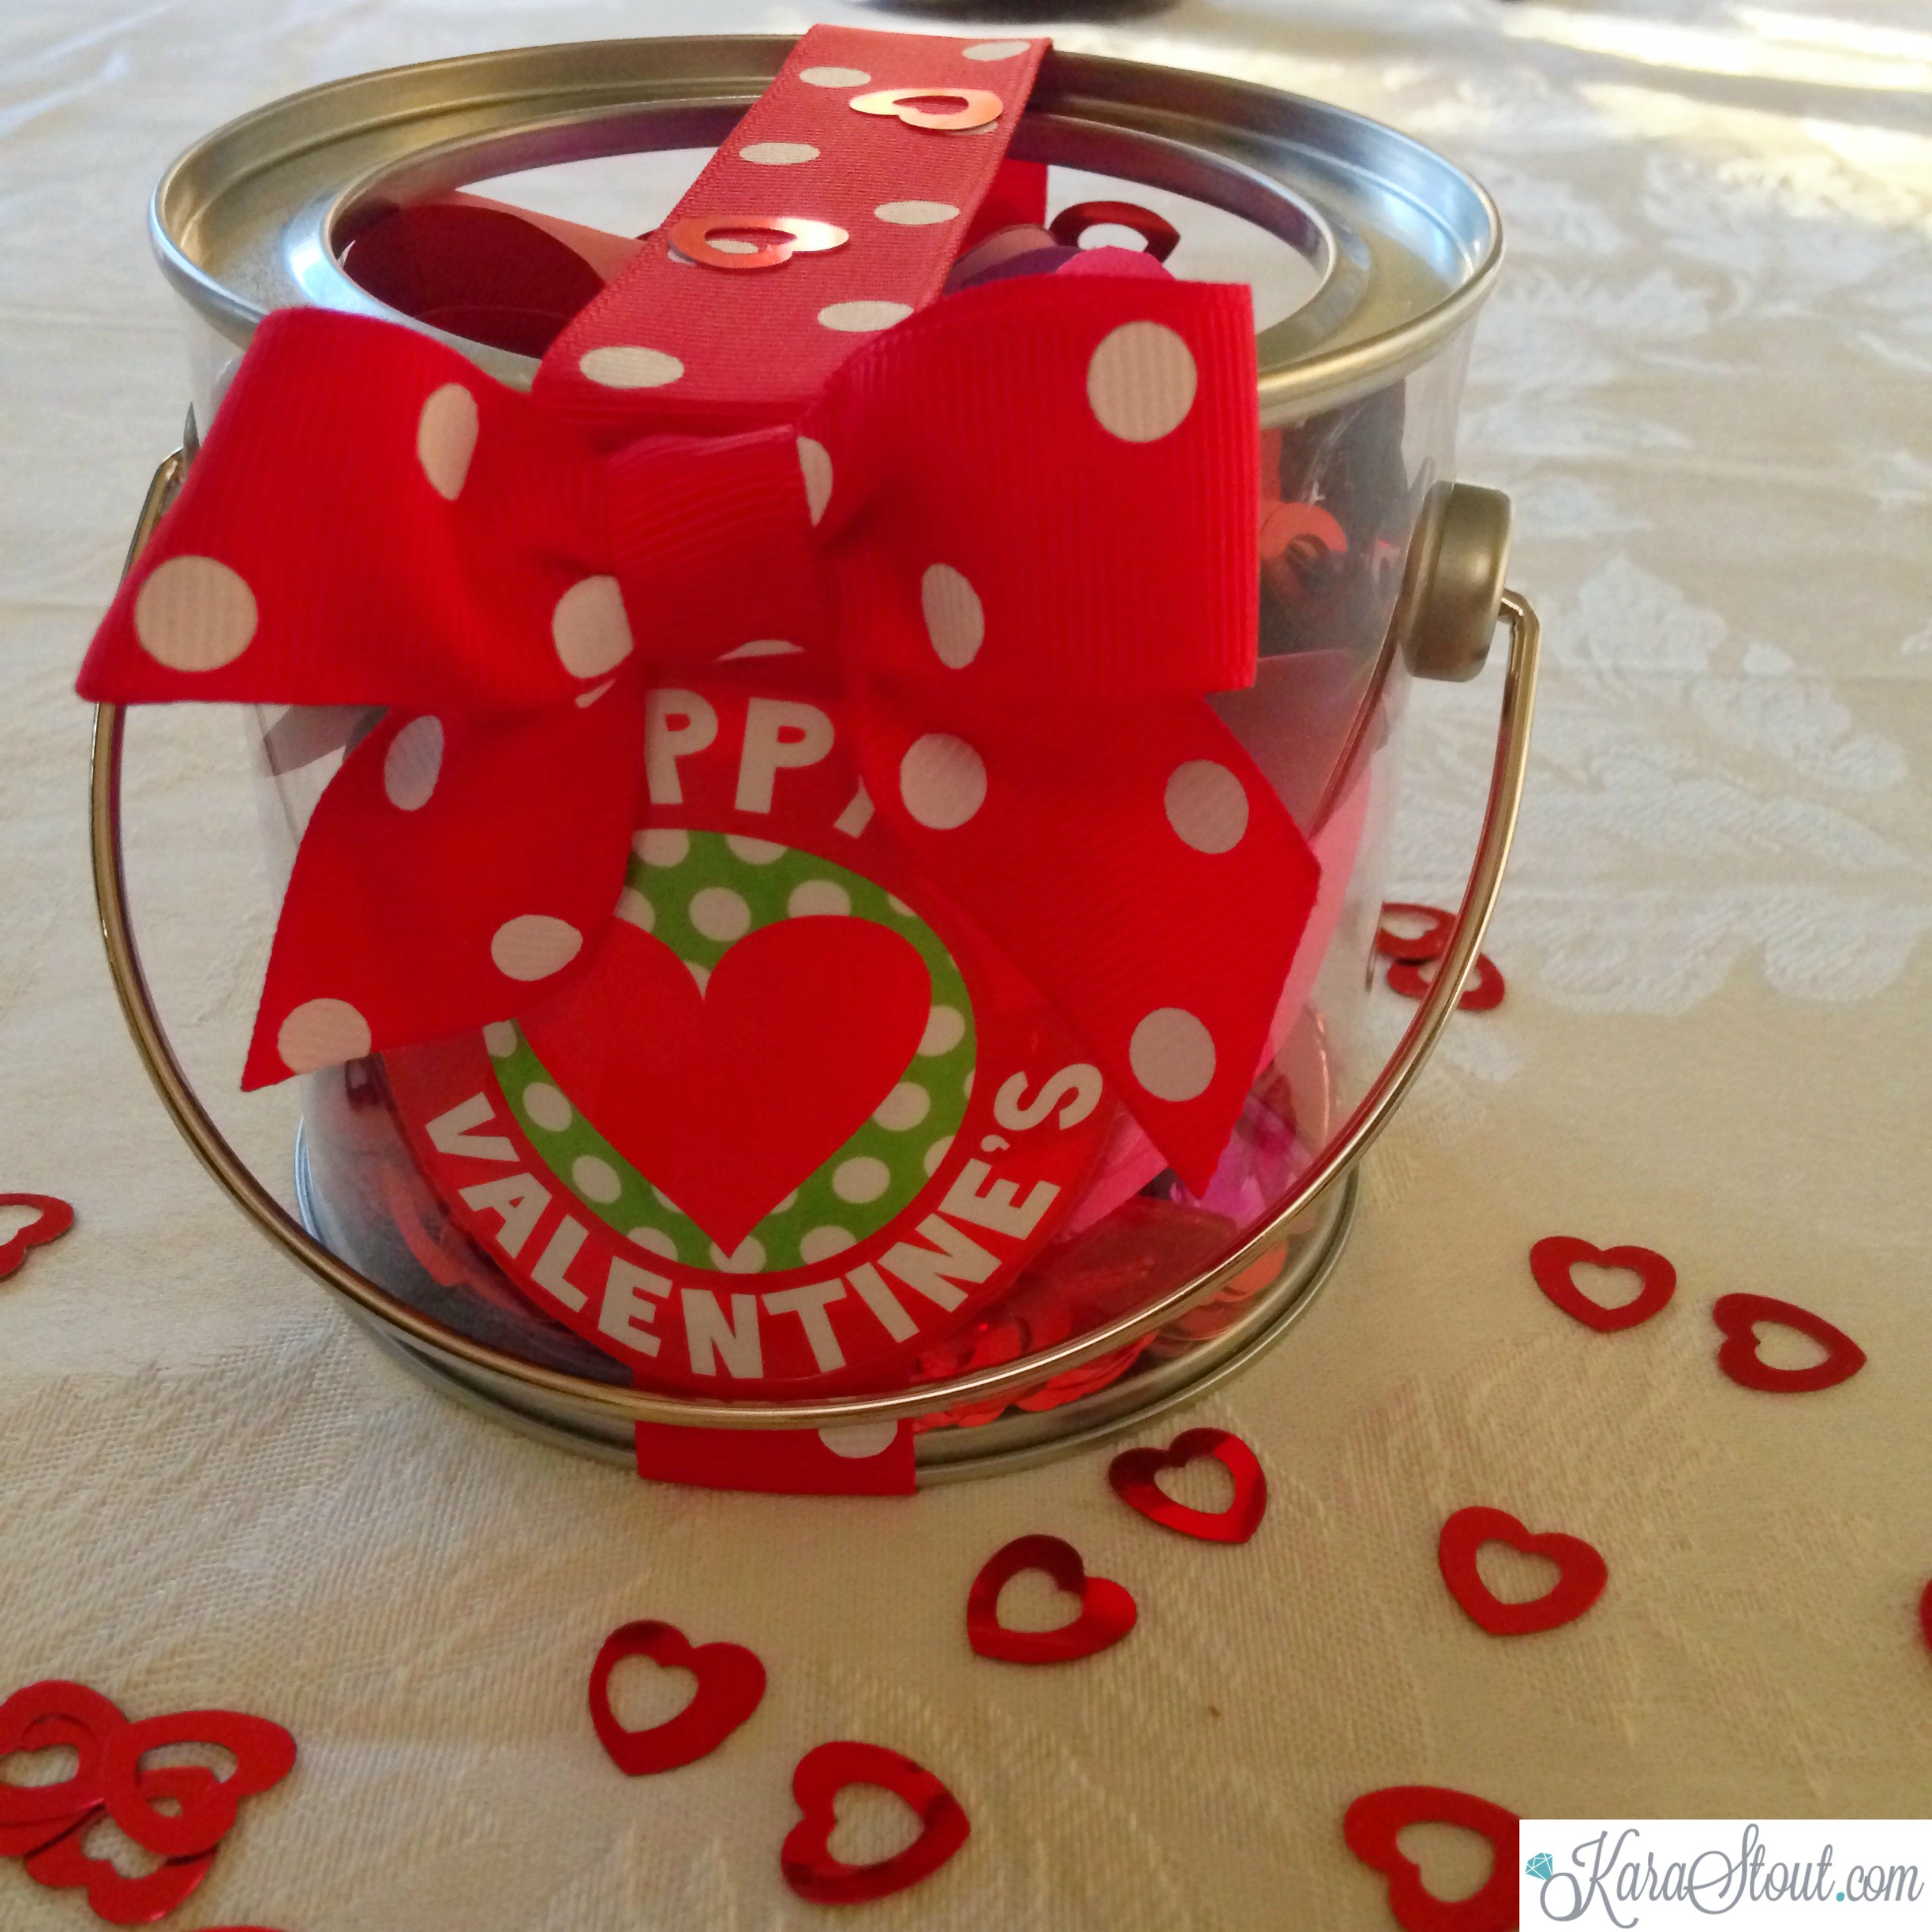 Why I Love You Jar A Valentine S Day Diy Gift Nutrition By Kara